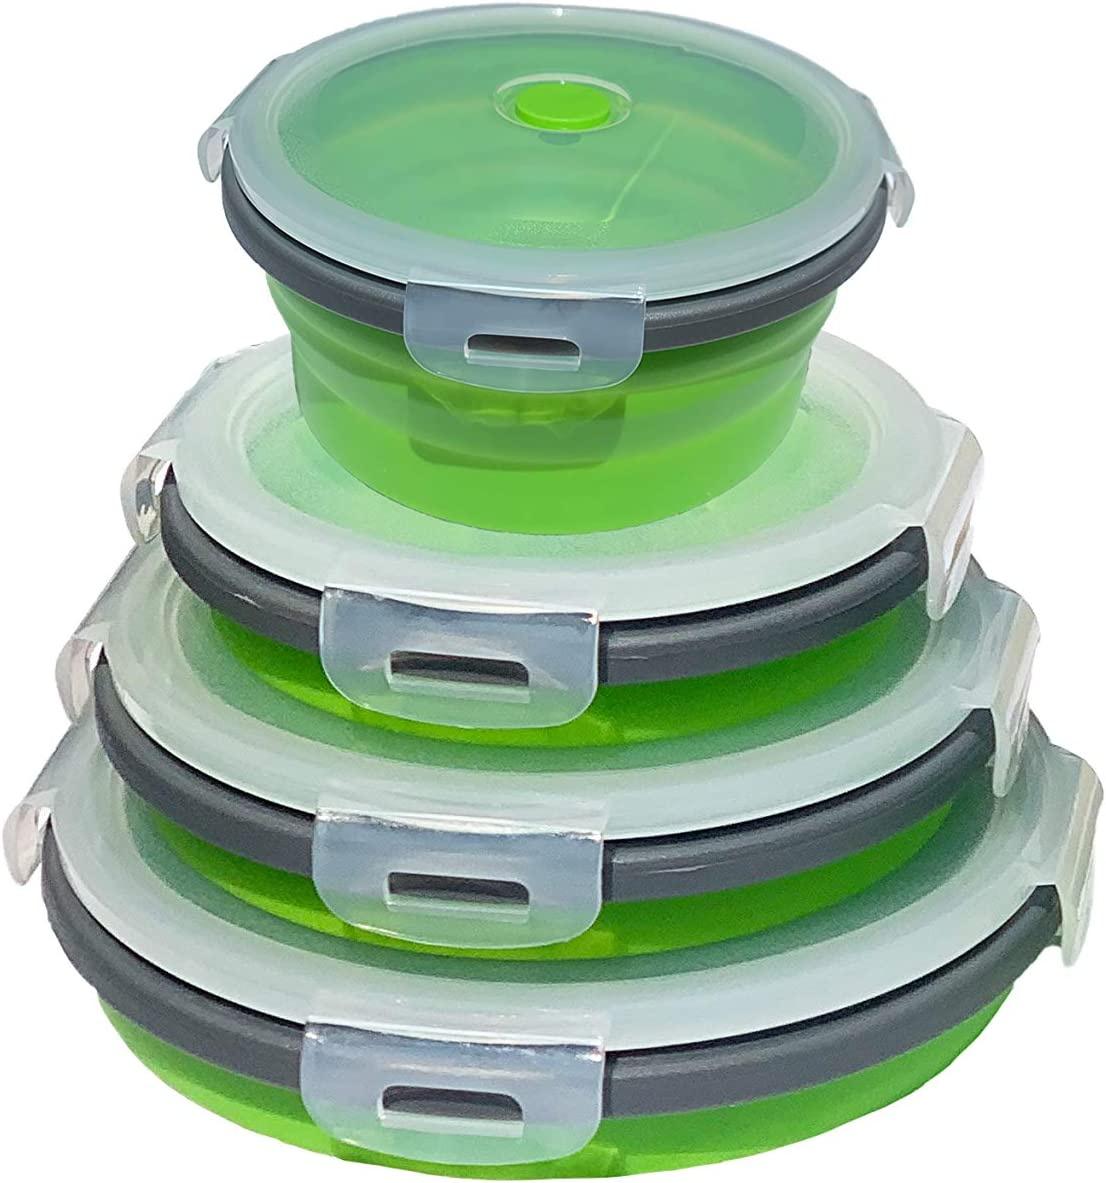 EVARIT Collapsible Silicone Food Storage Containers Collapsible Bowls Round Silicone Lunch Containers BPA Free - Set of 4